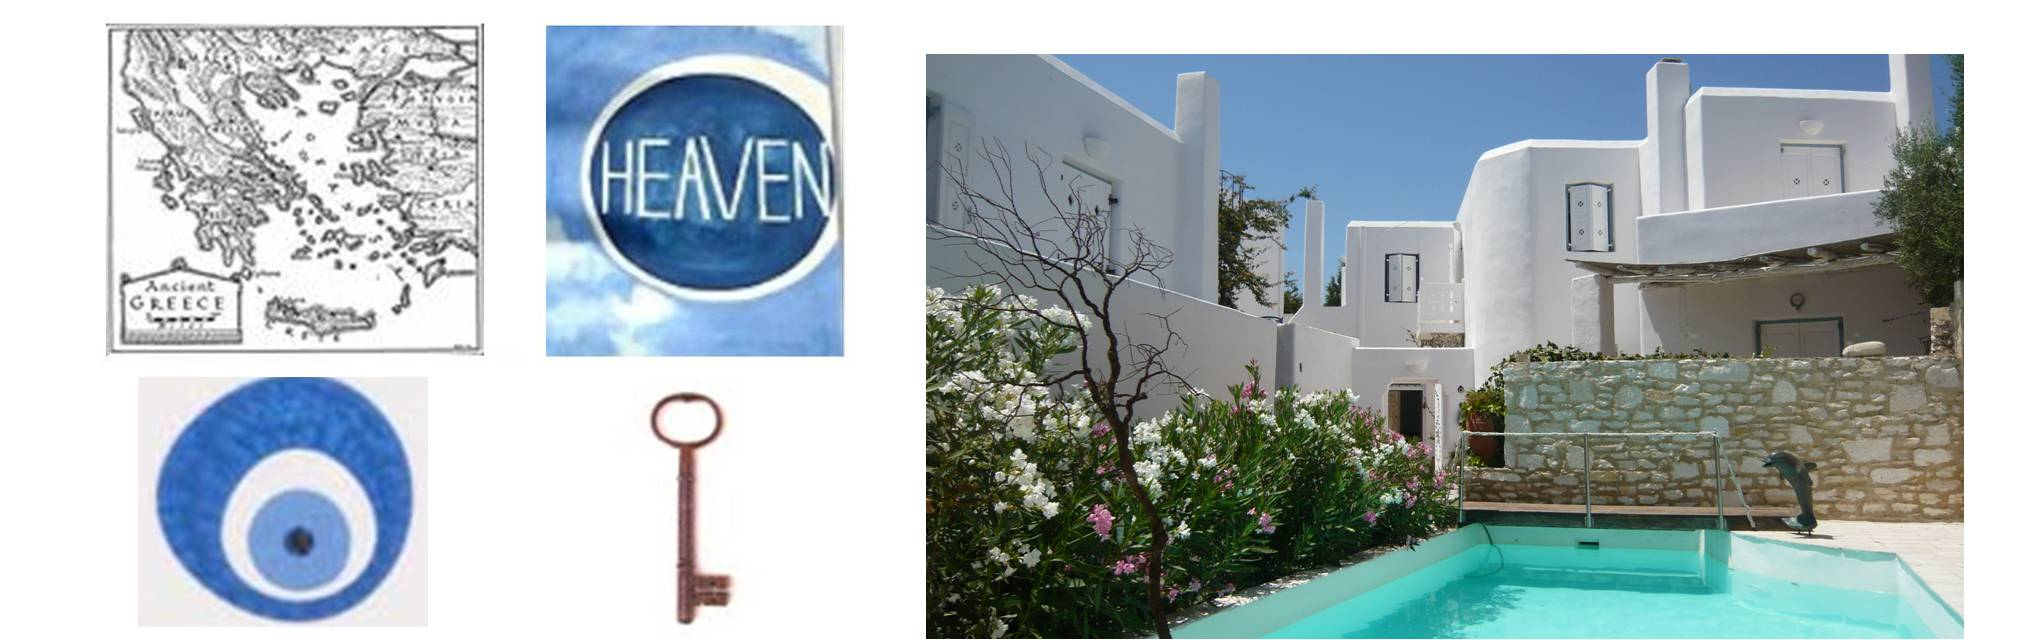 Maisonettes for rent from Heaven Hotel in Naoussa Paros